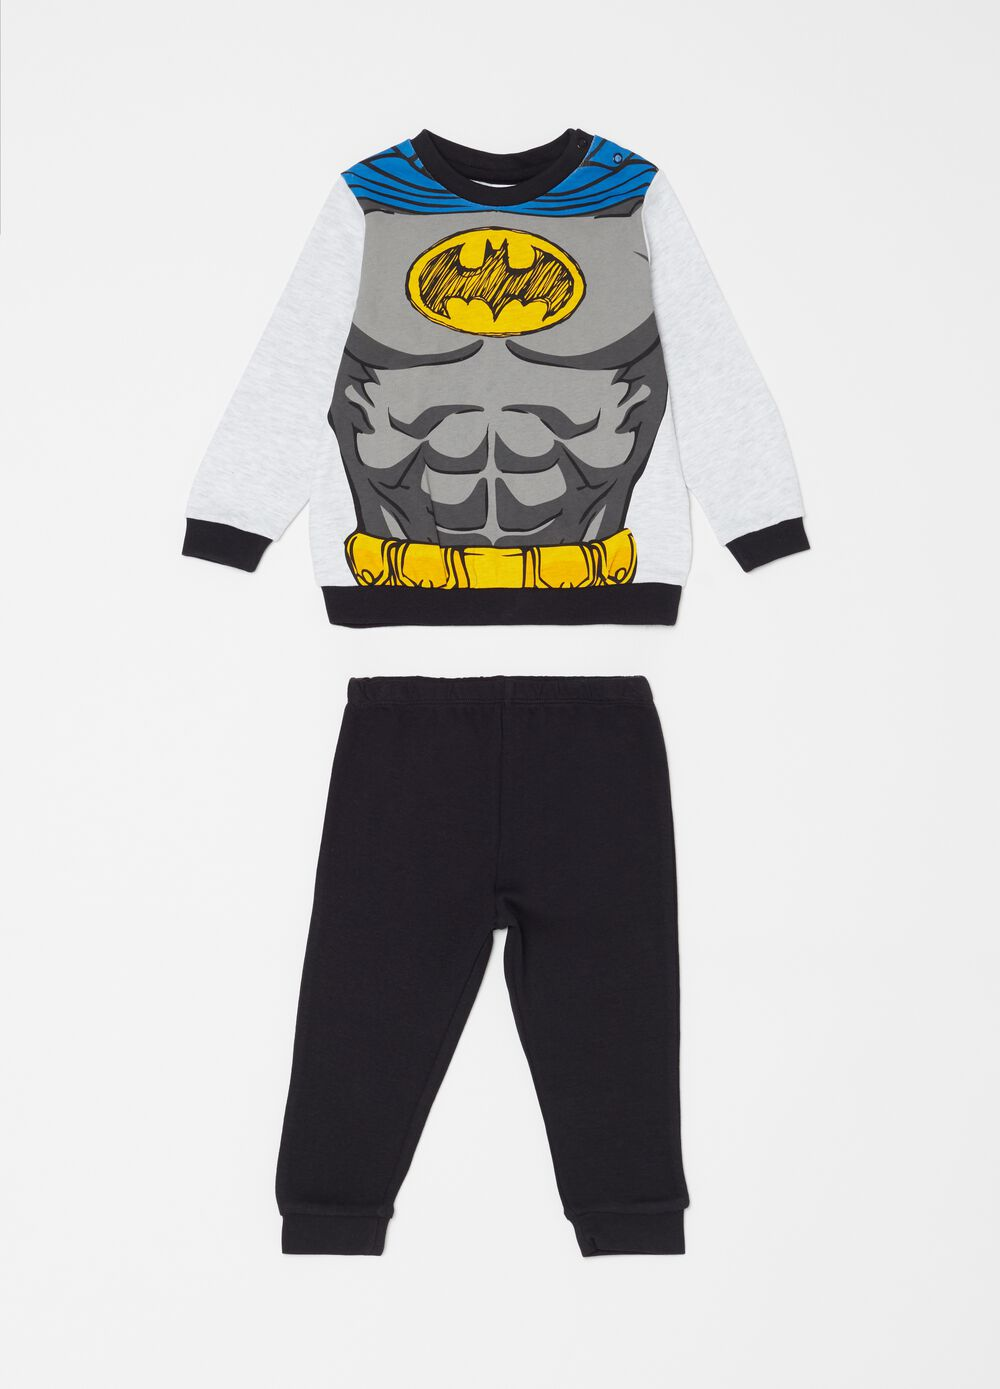 Long-sleeved Batman pyjamas [DC COMICS]